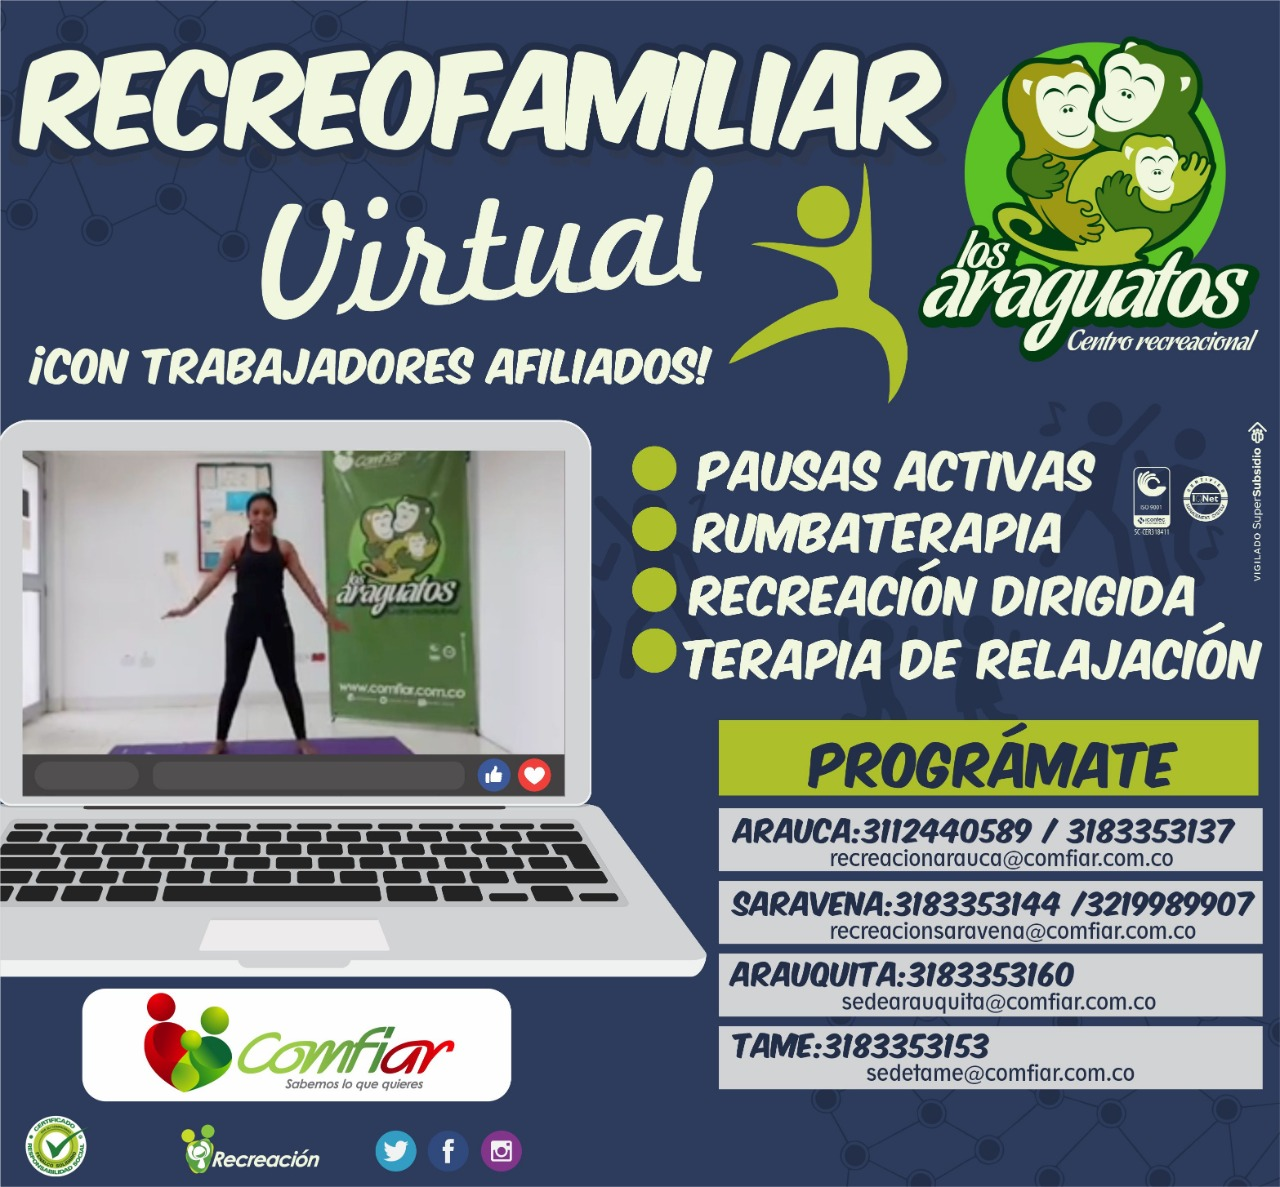 Recreofamiliar virtual Prográmate